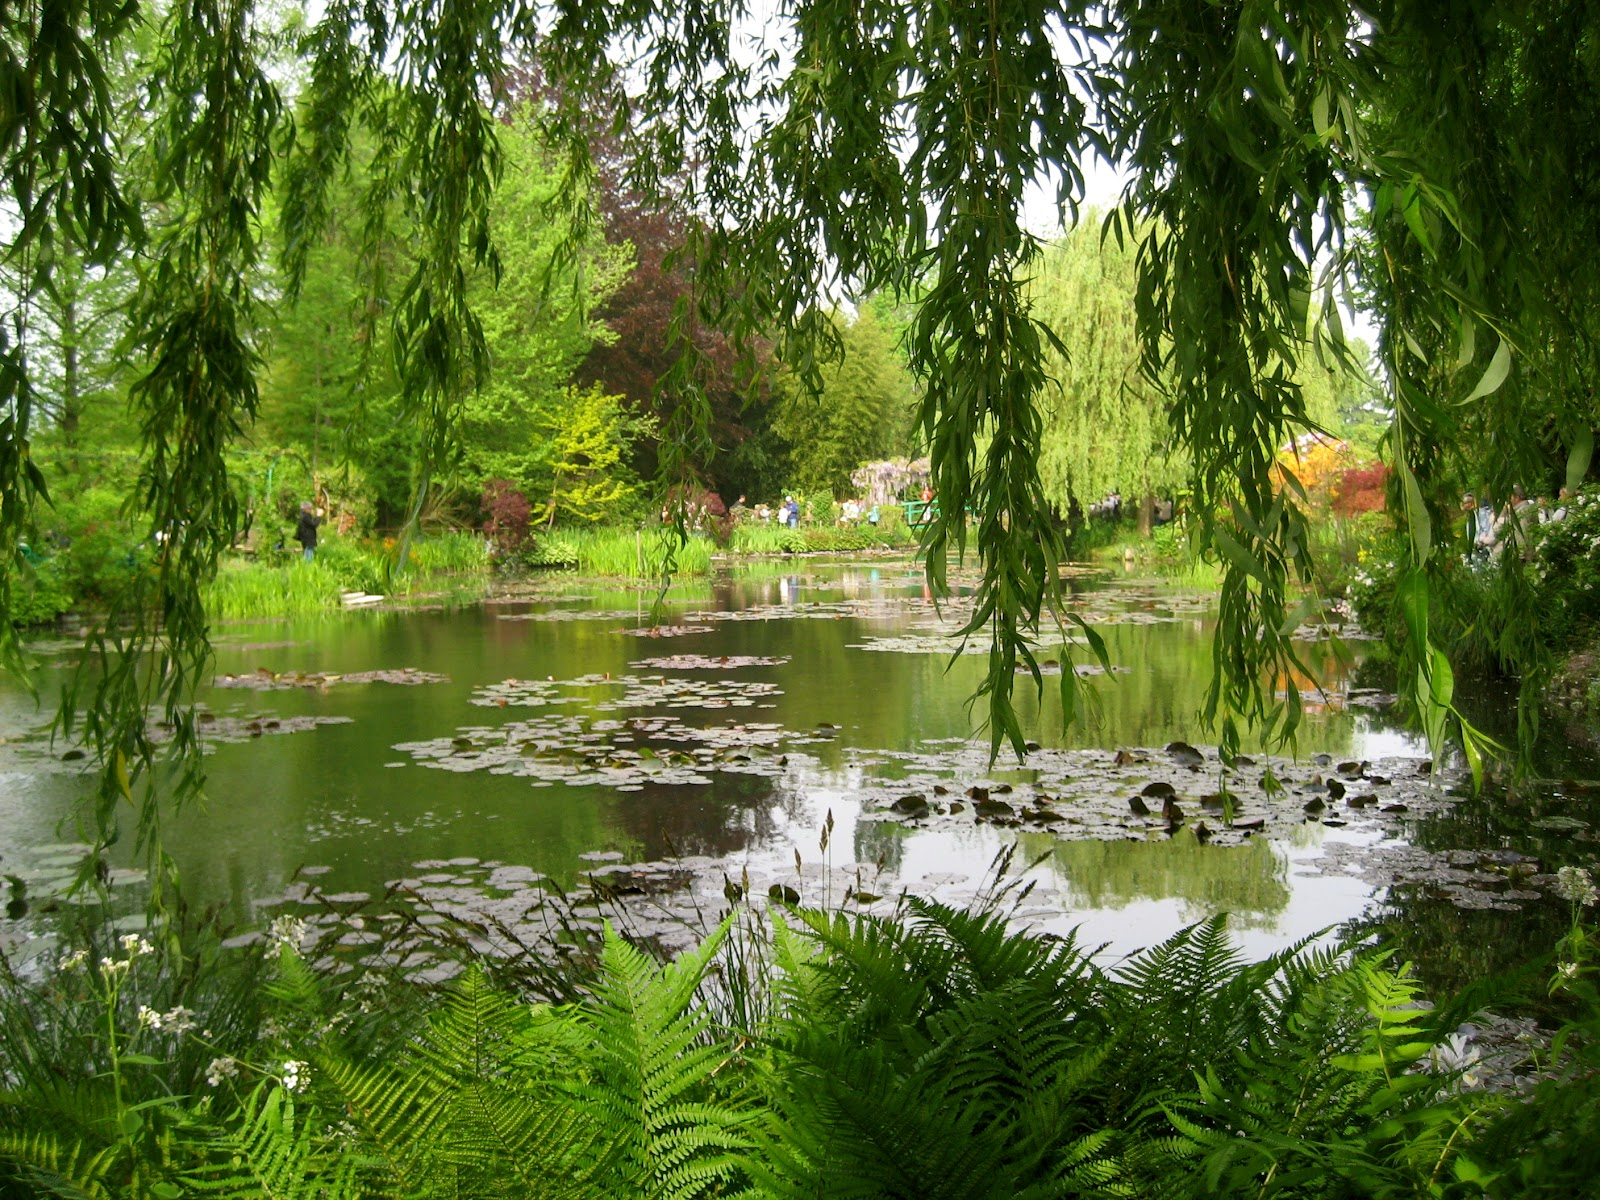 Paris Rendez-vous: The Giverny Masterpiece